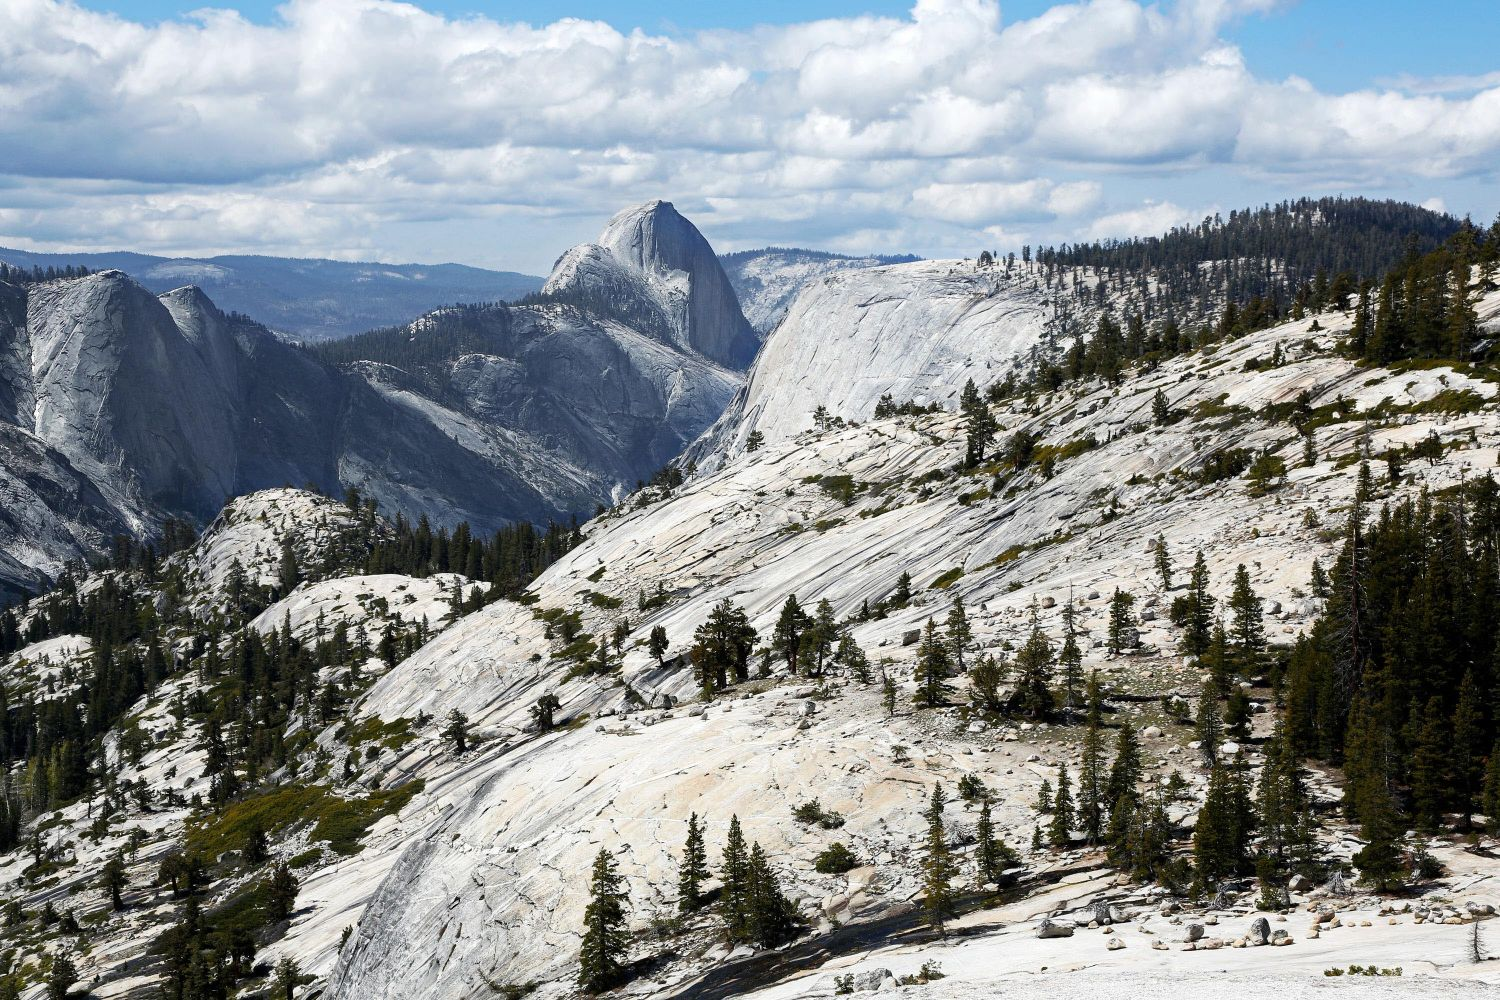 Half Dome from Olmsted Point, Yosemite National Park on the Tioga Road after a heavy fall of snow.